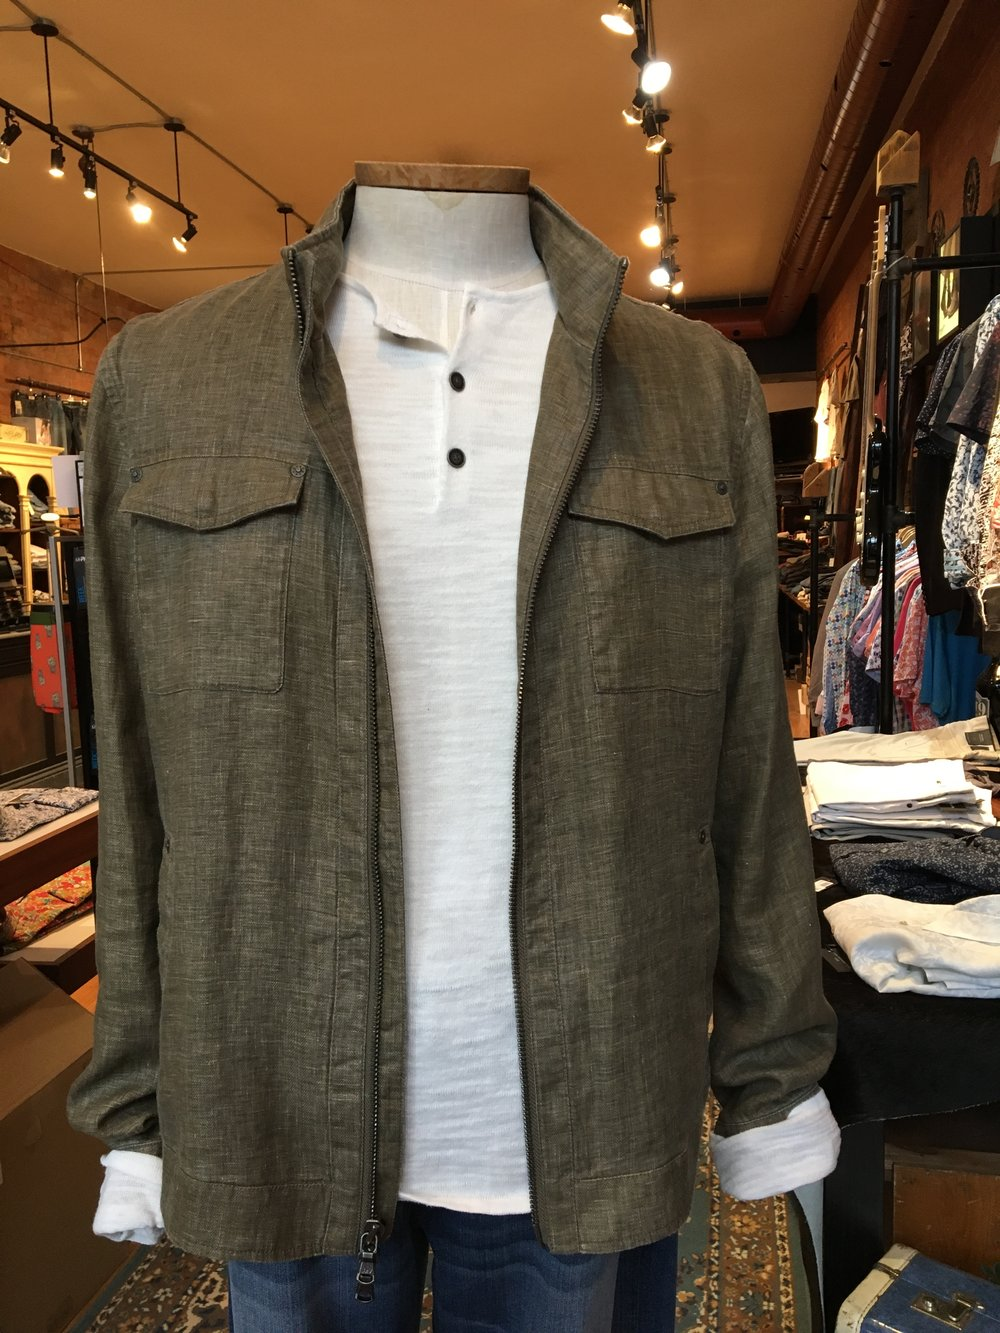 Let's be real, it hasn't been the warmest summer! That's why we LOVE this linen jacket blend from John Varvatos, pictured with a super soft henley in the perfect summer weight.